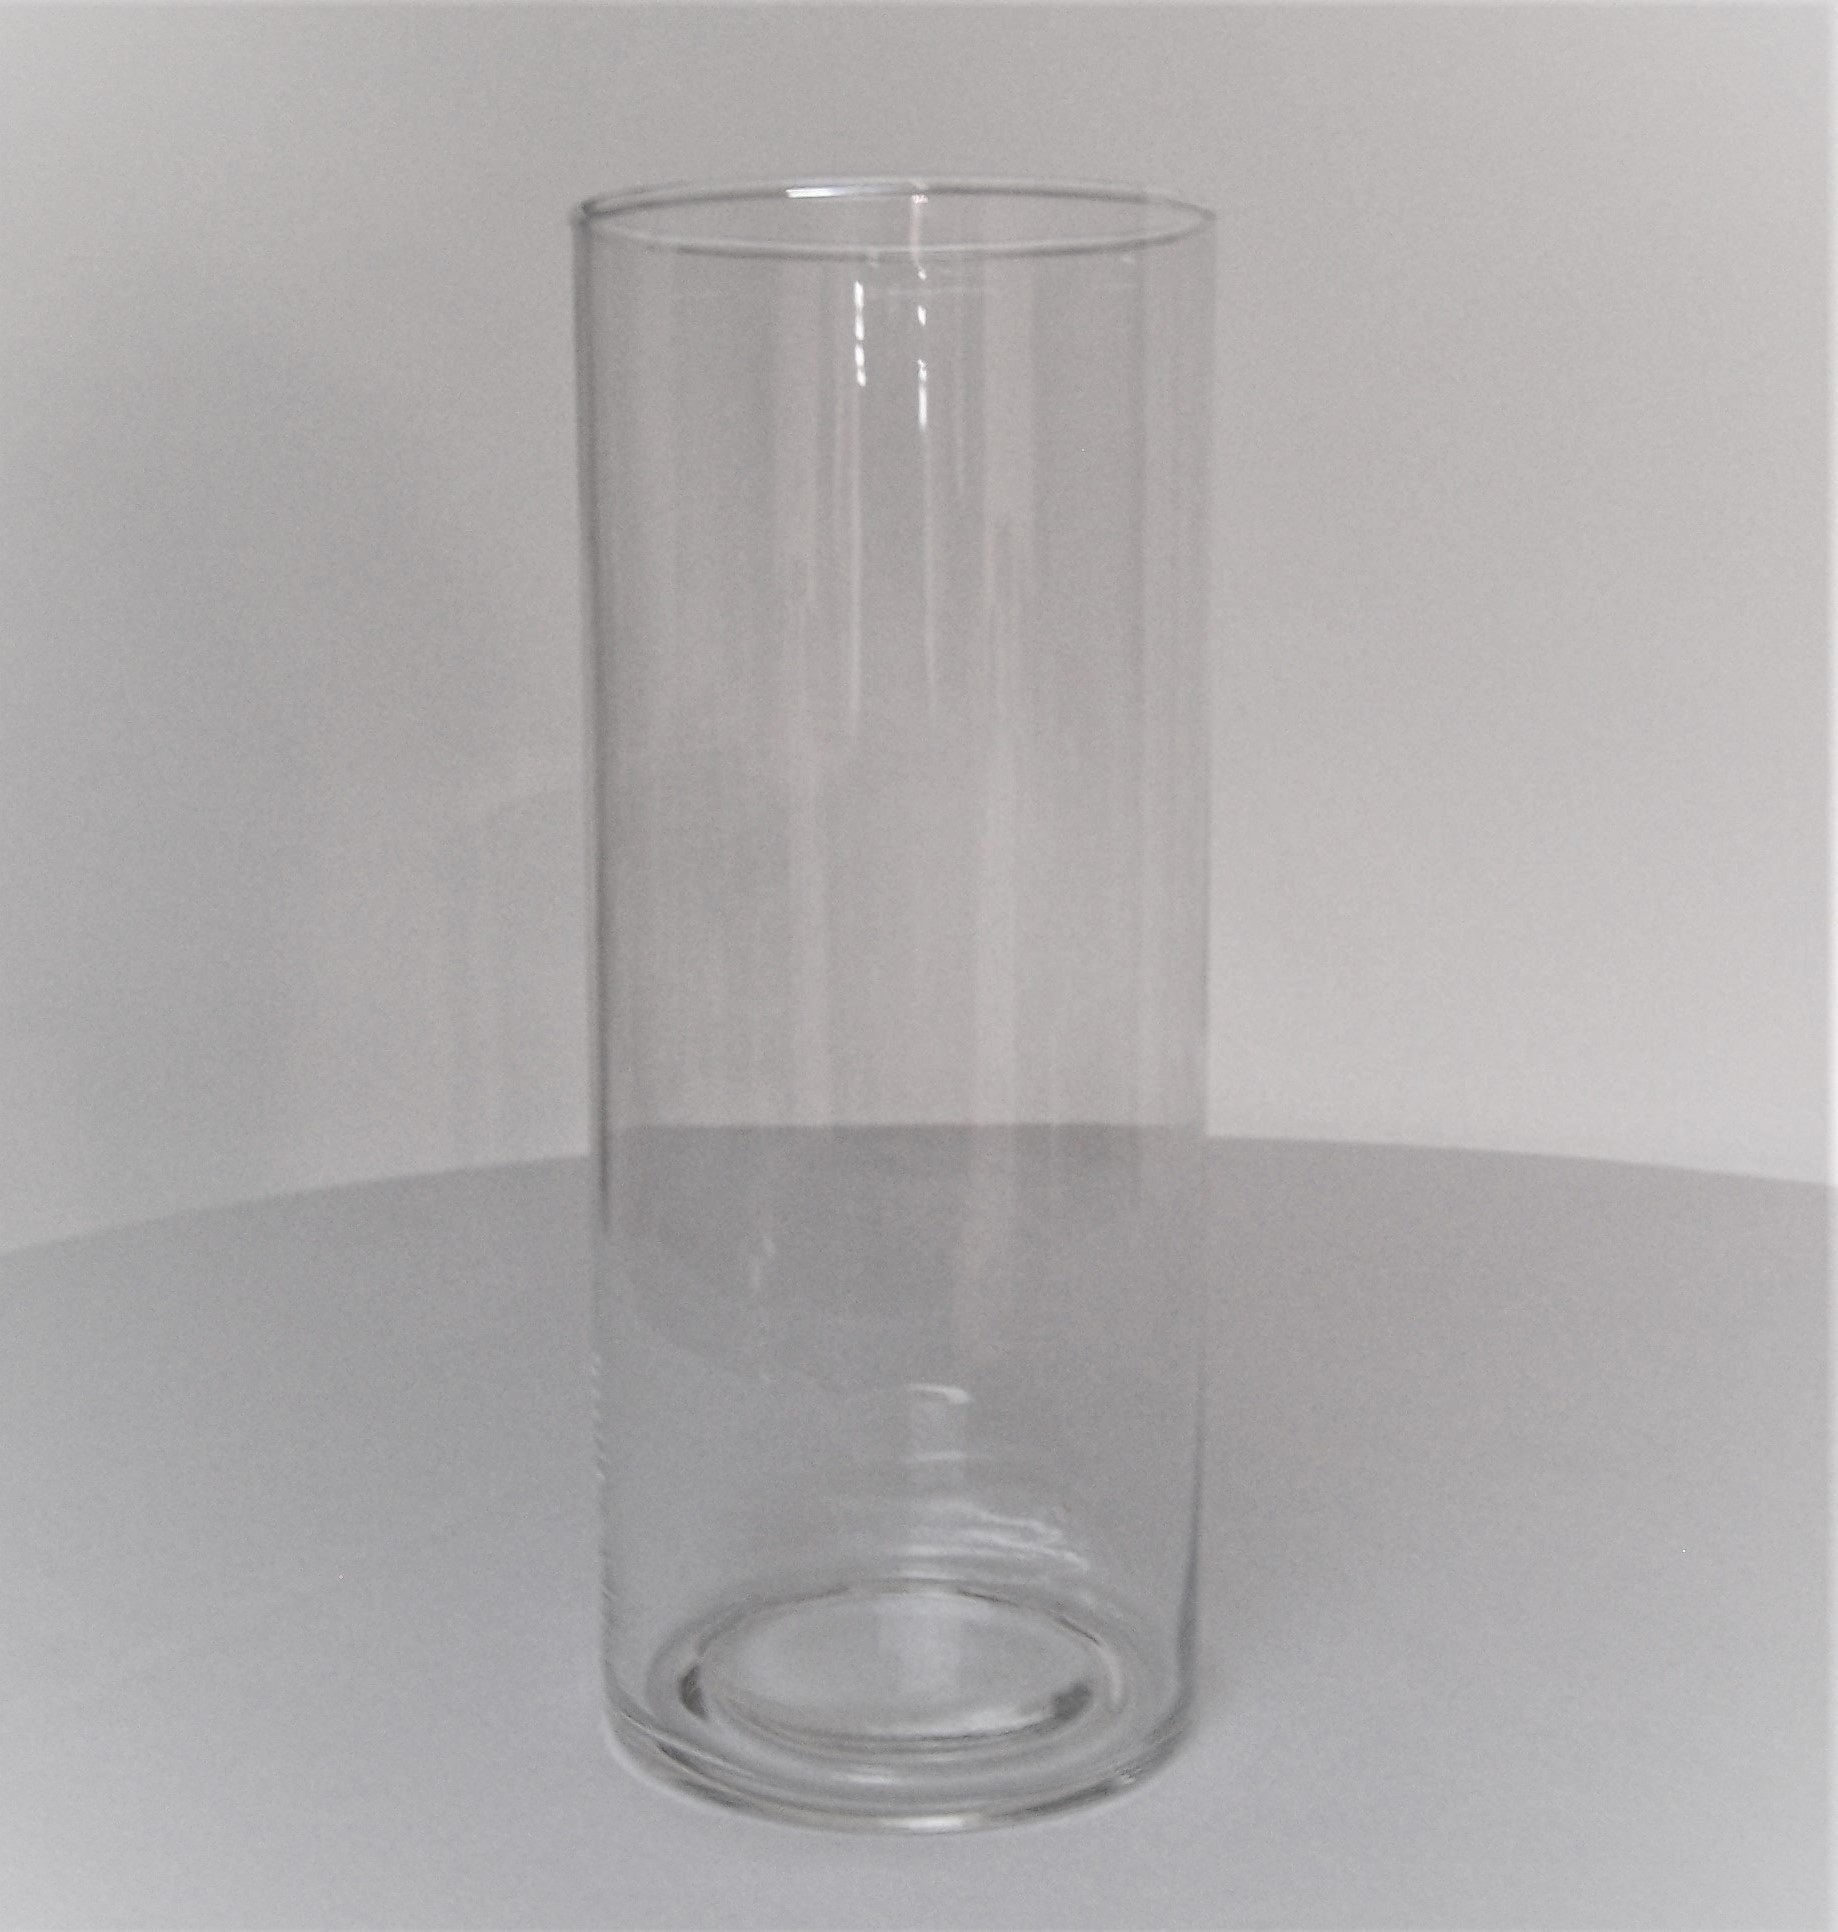 Location vase cylindrique H25 - 2.60€ tarif weekend